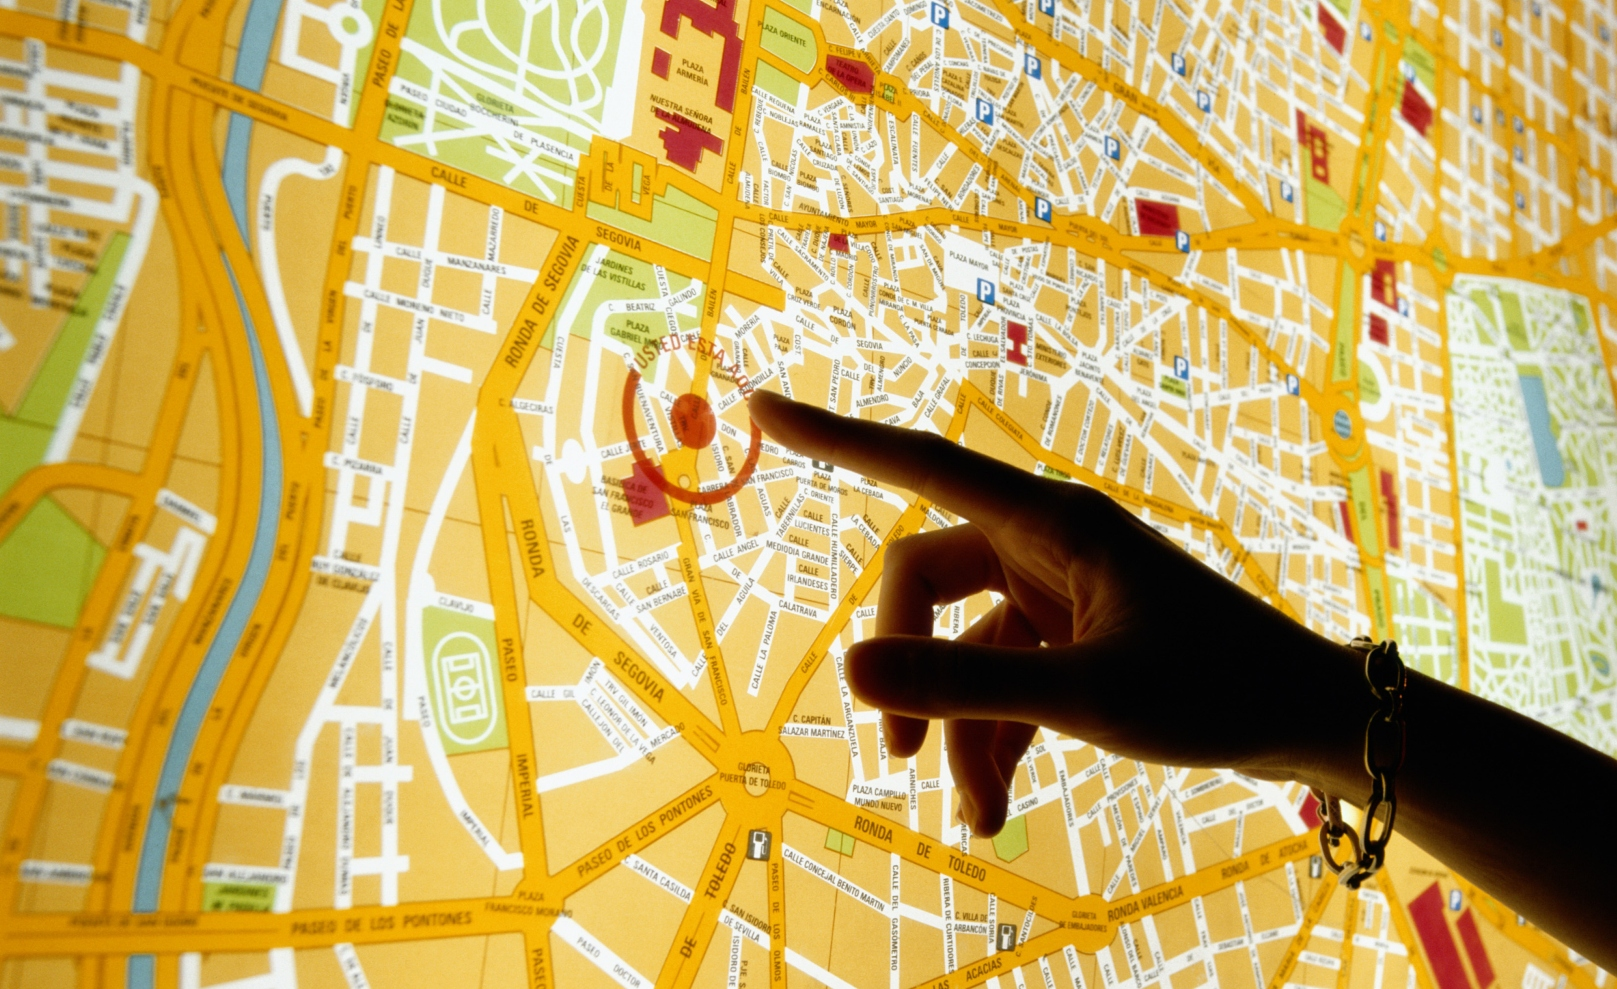 Google Maps gets Tracking and Geolocation APIs, to help apps determine location without GPS